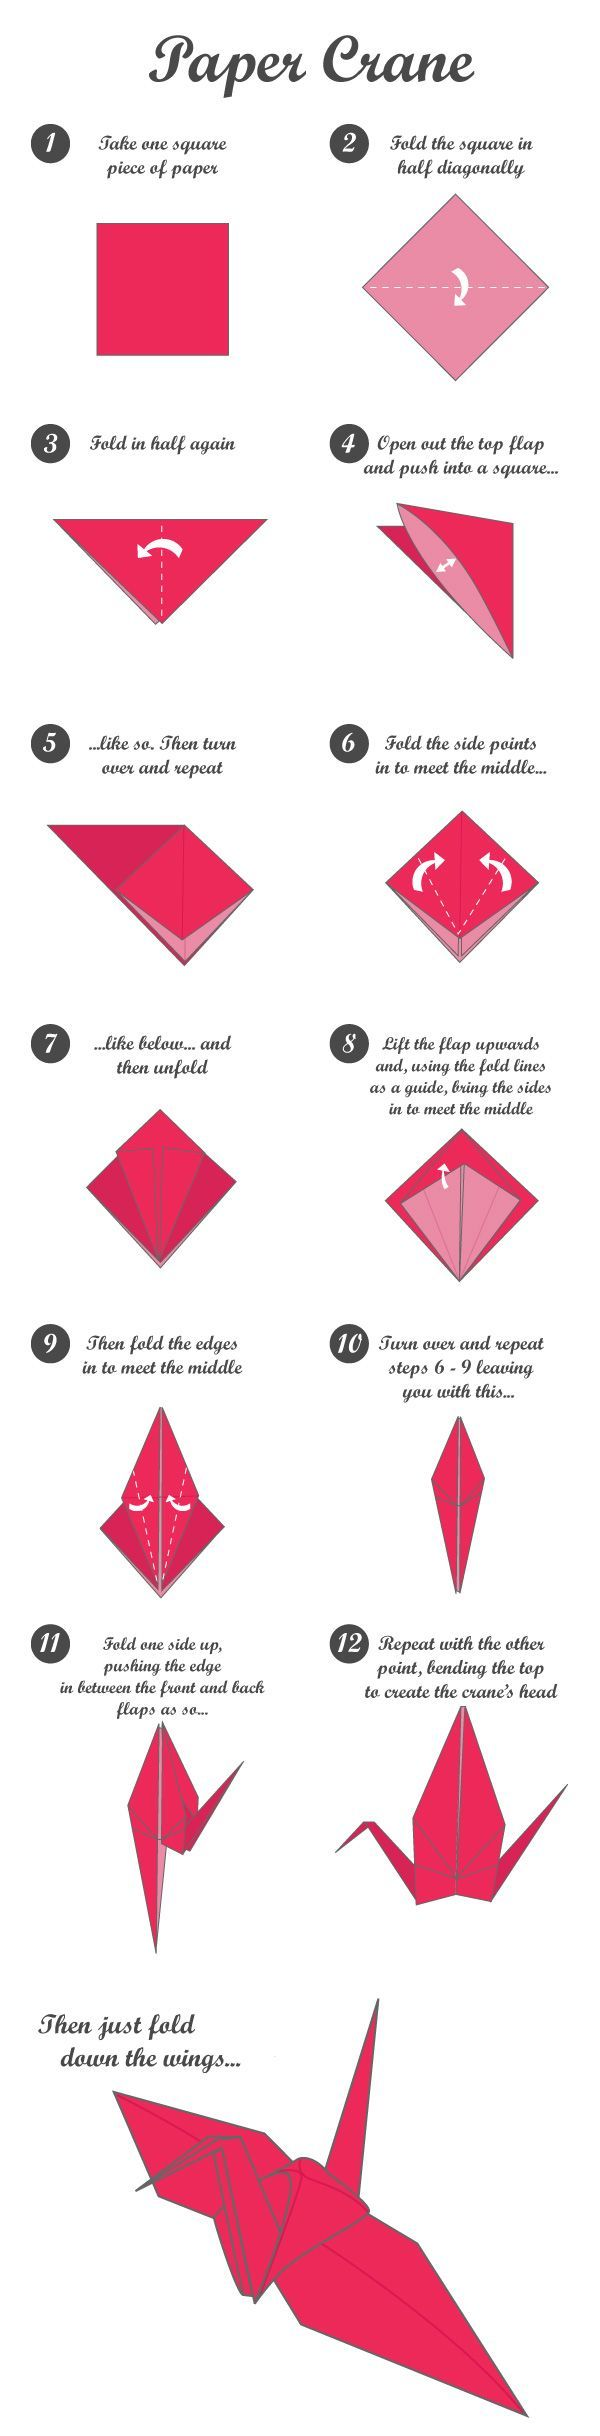 Origami paper crane tutorial, something i aspire too! I hear the crane is one of the most intimidating creations. I'm diving in!